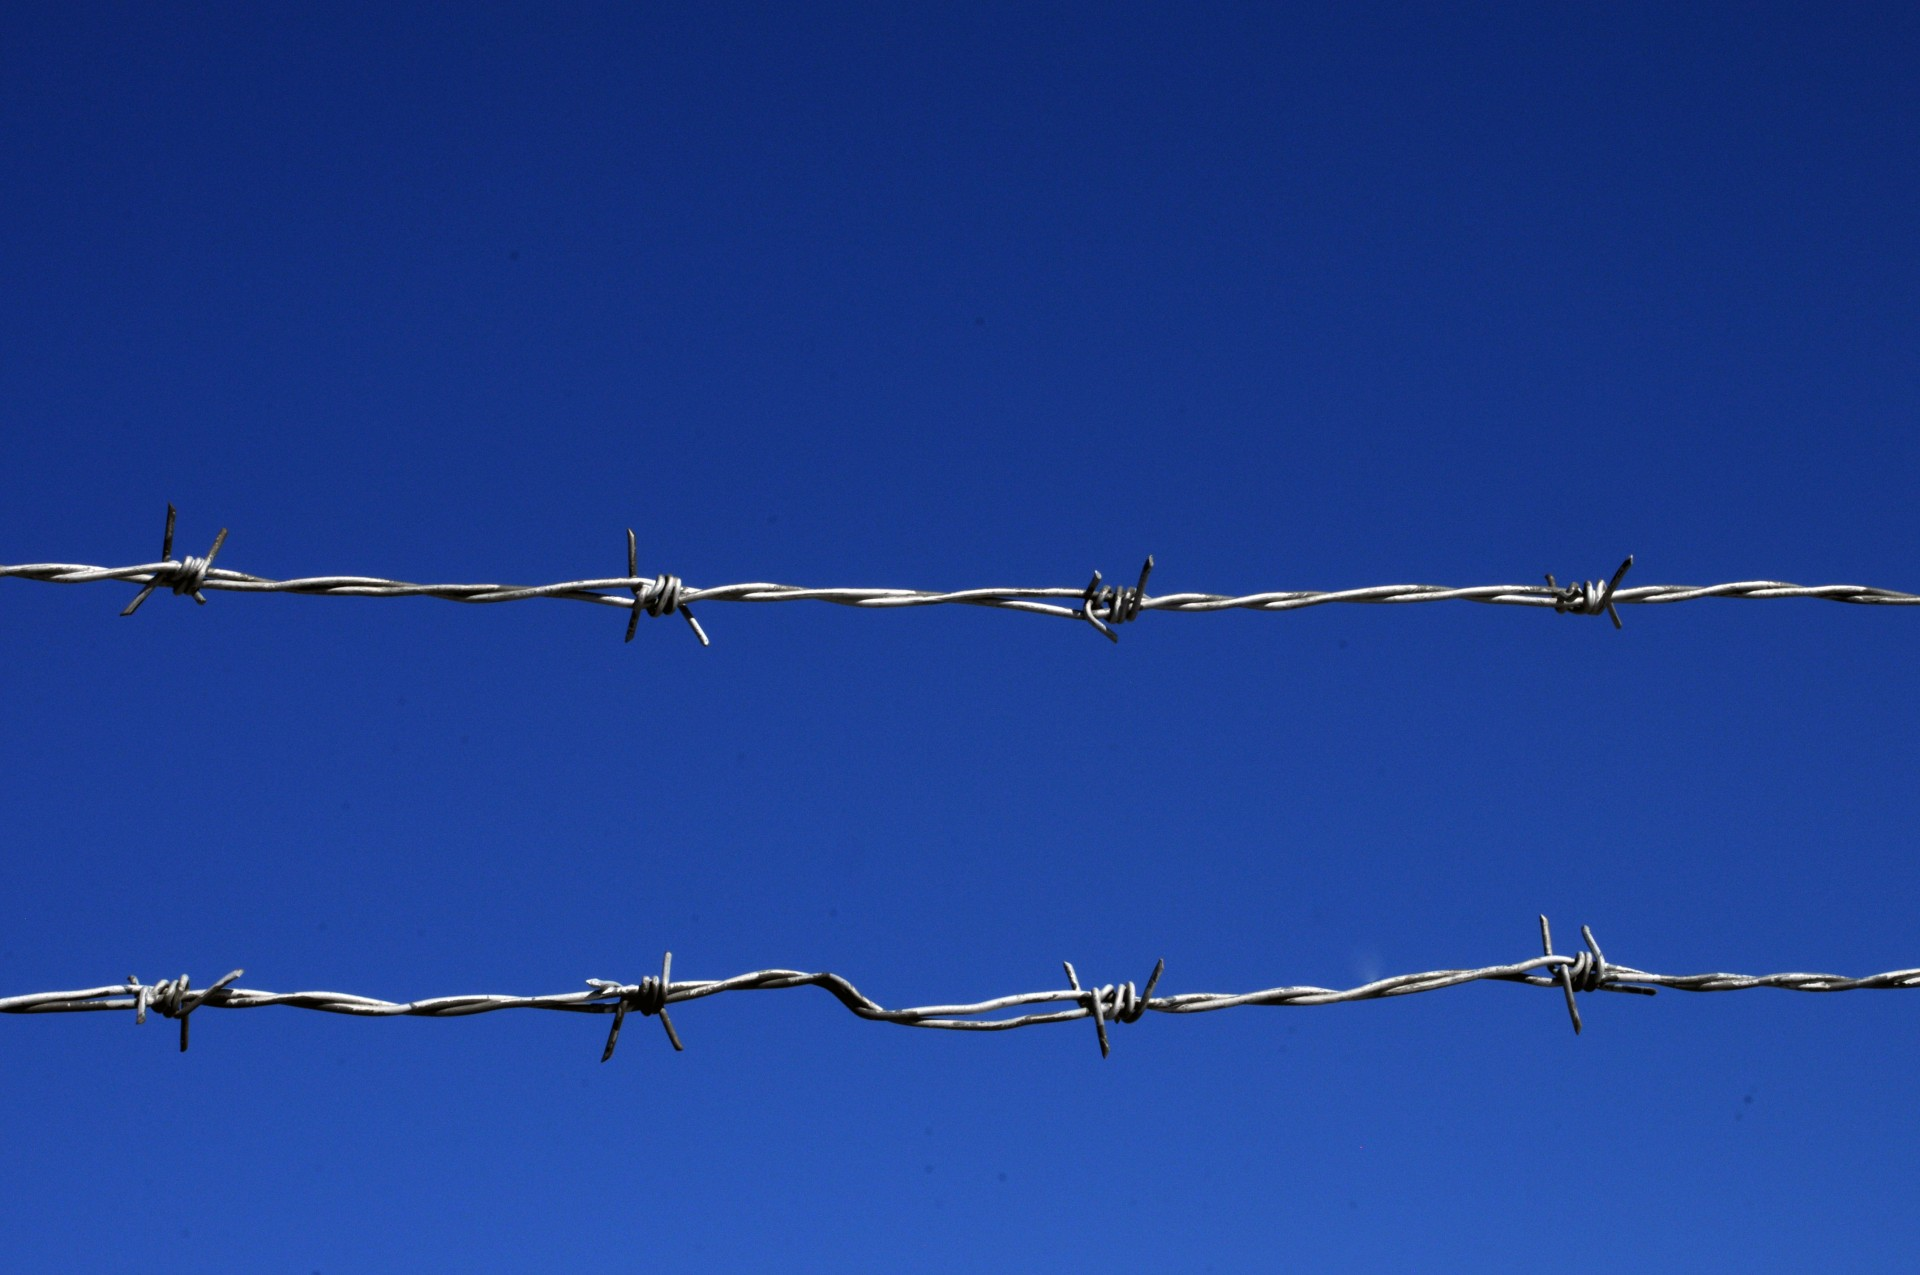 Barbed Wire Fence Blue Sky Free Stock Photo - Public Domain Pictures